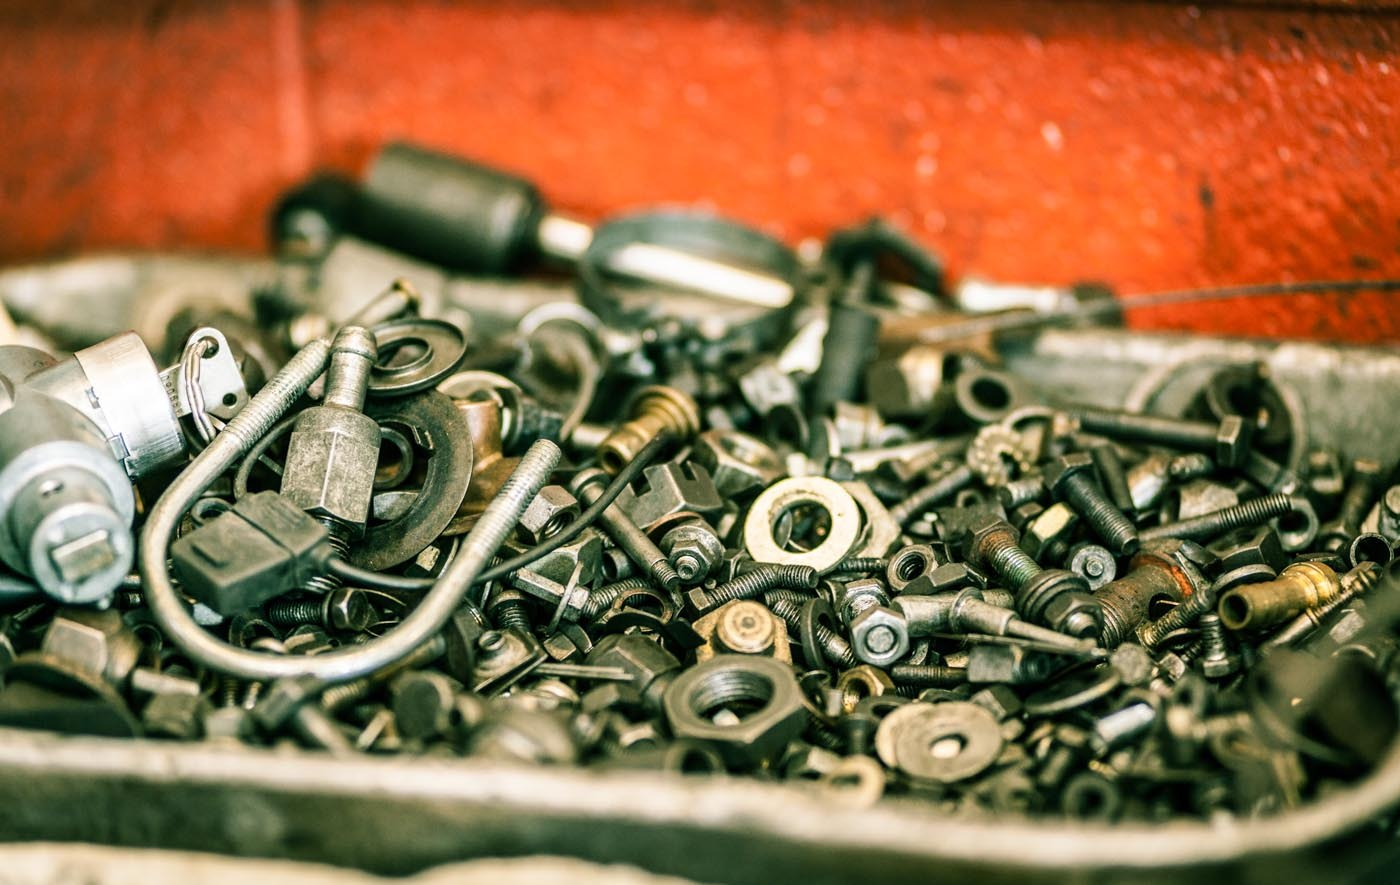 Pricing spare parts can be tricky. Pricing automation can help.